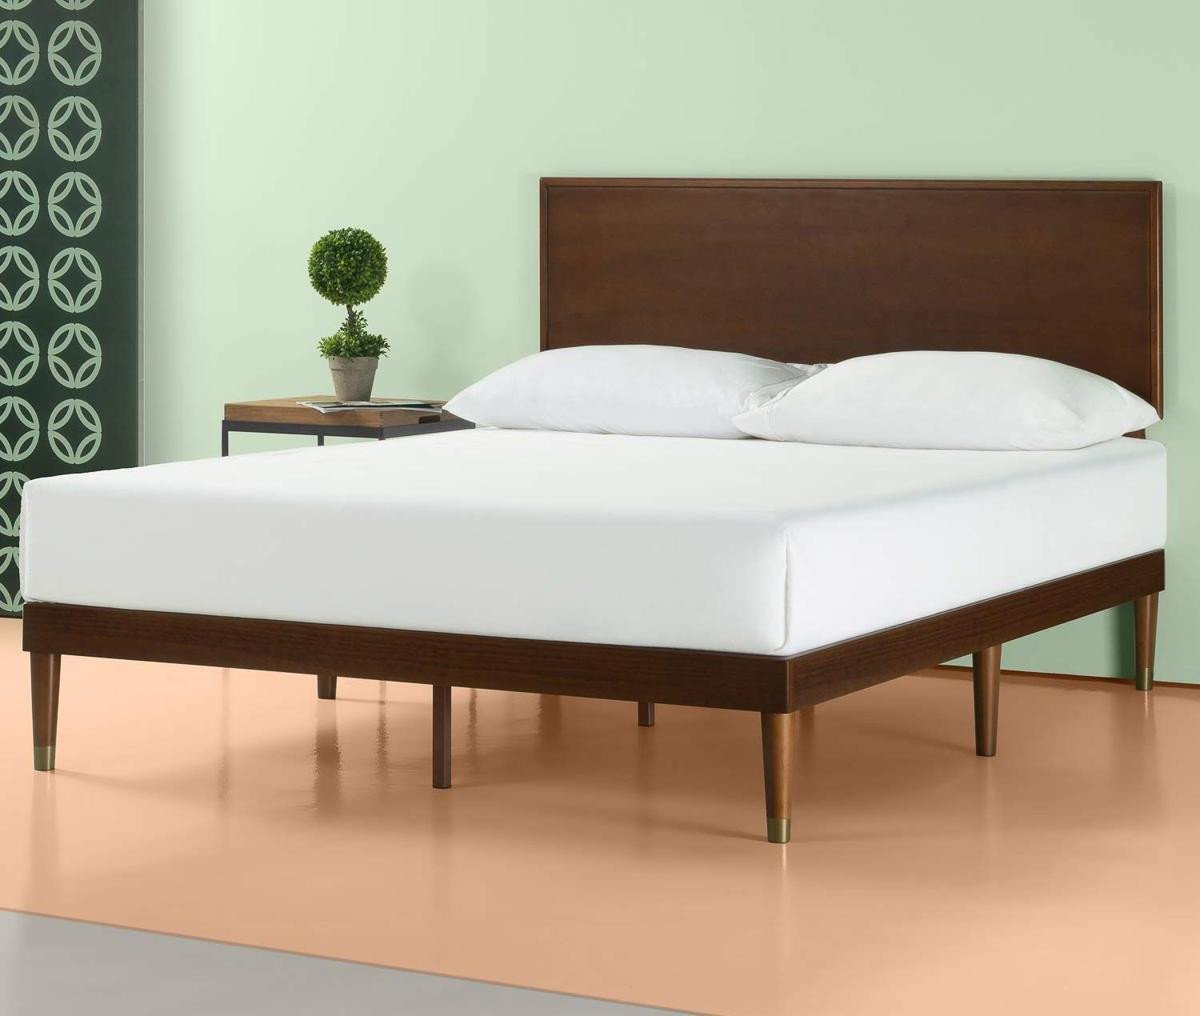 Wood and Metal Bedroom Inspirational Get A West Elm Look for Under $300 with This Mid Century Bed